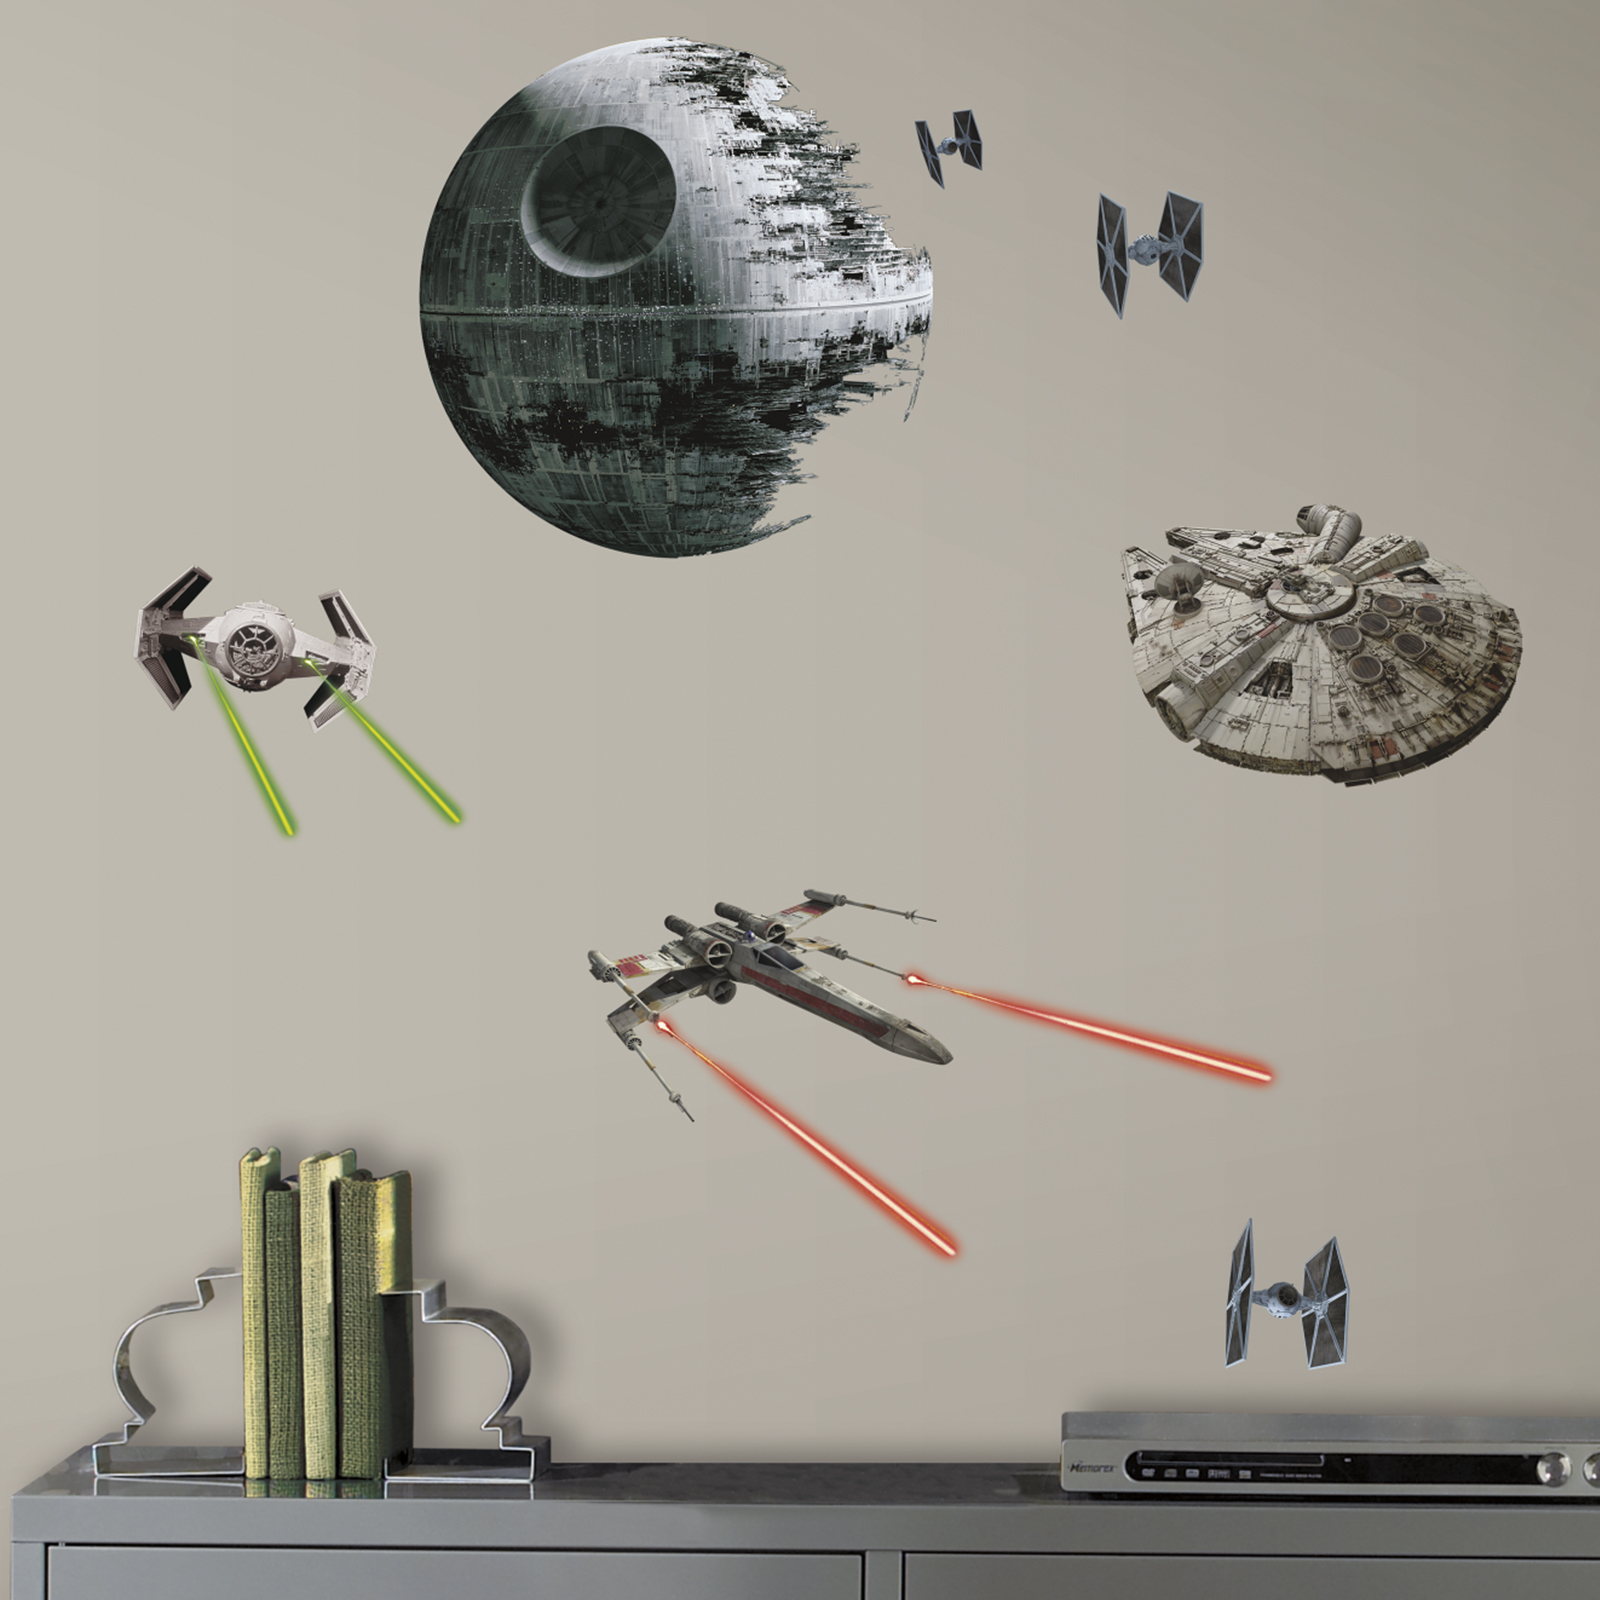 Star Wars 7 The Force Awakens Spaceships Peel And Stick Wall Decals